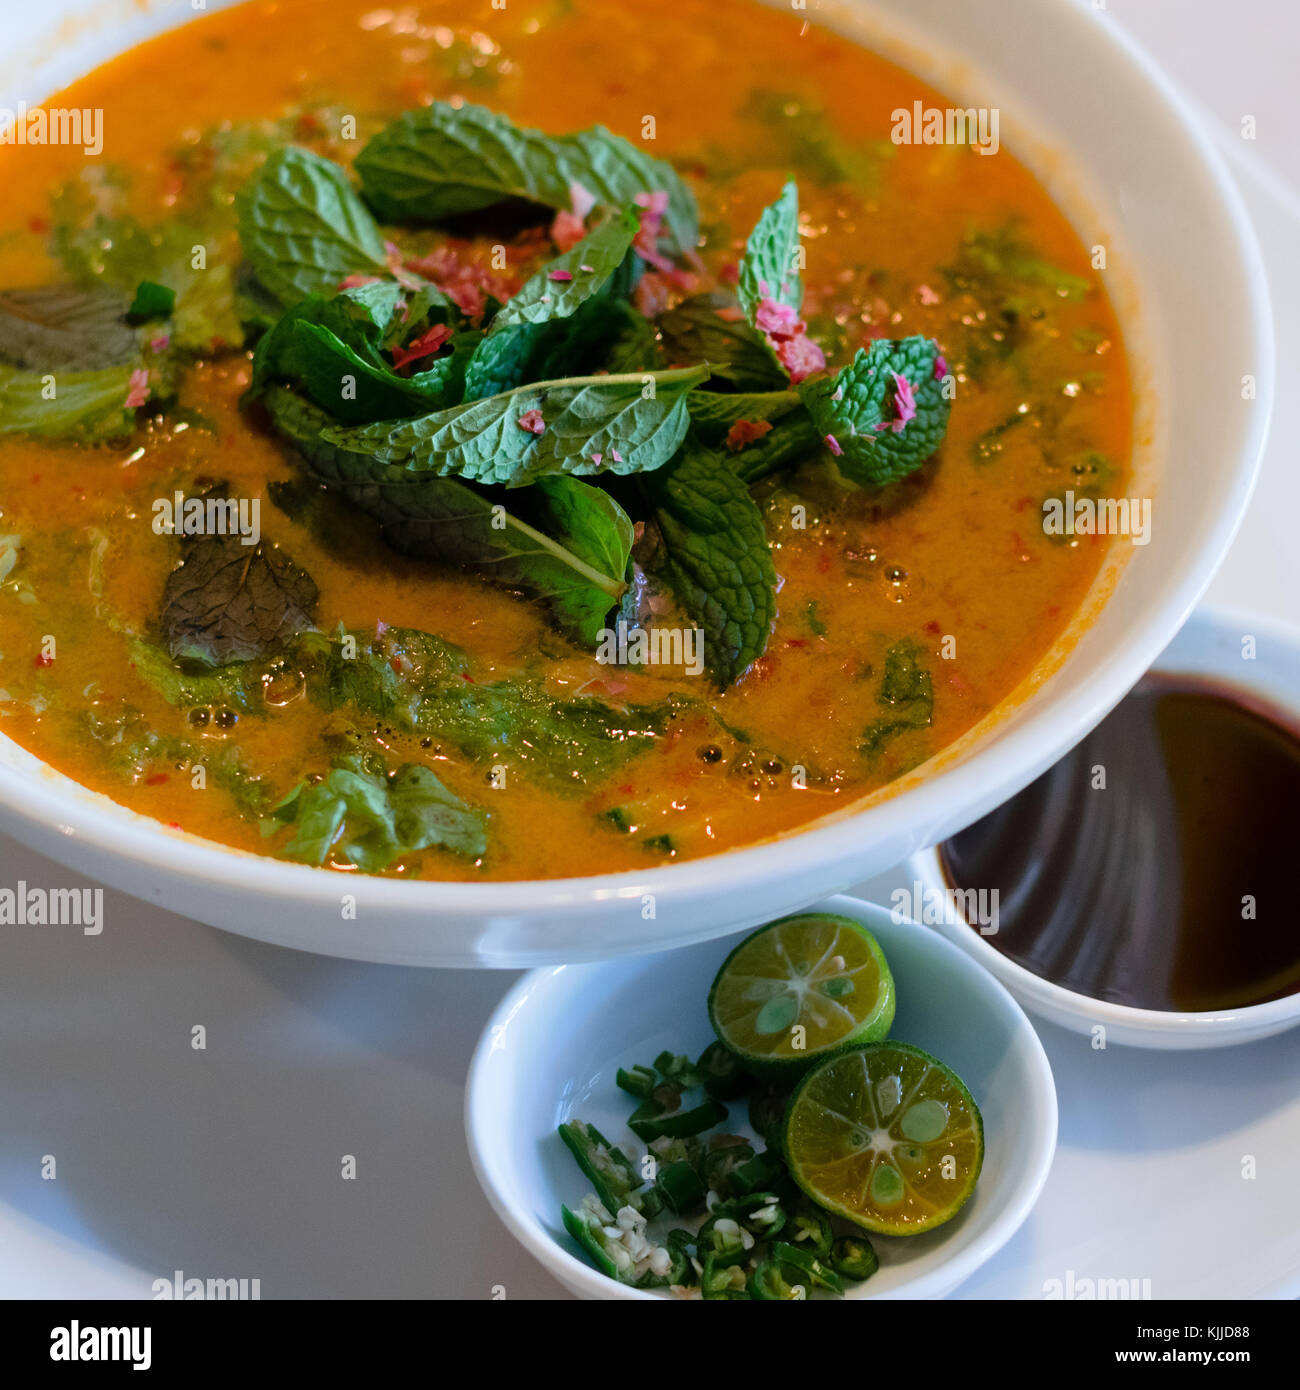 Tom Yum hot and sour soup from Thailand, with lemongrass, kaffir lime, fish sauce, shrimps and crushed chili peppers. Stock Photo